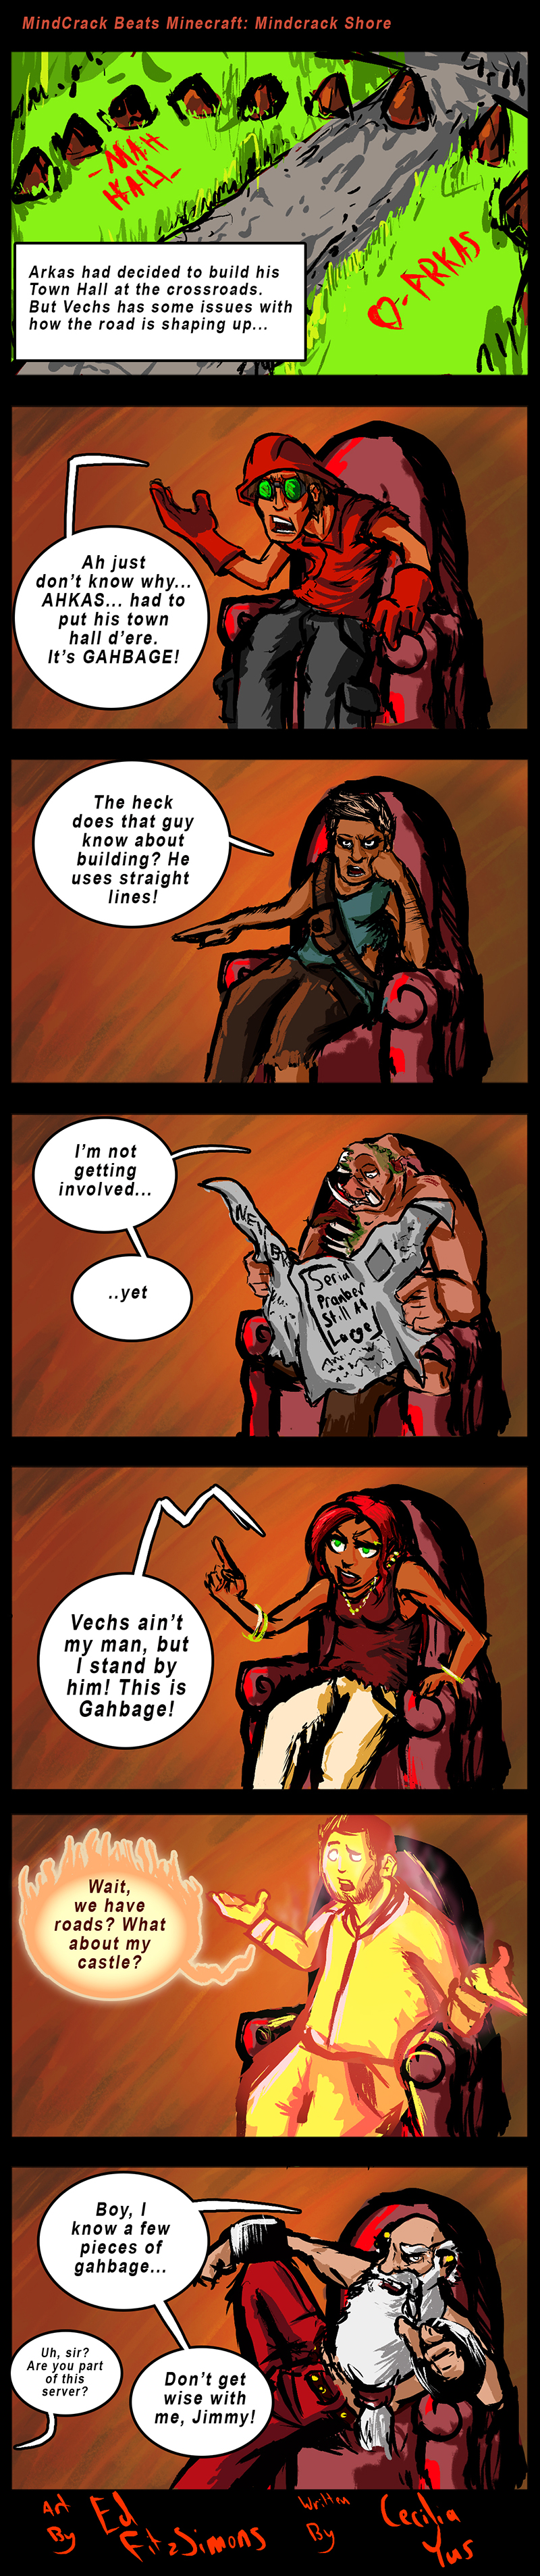 Comic 17: Mindcrack Shore